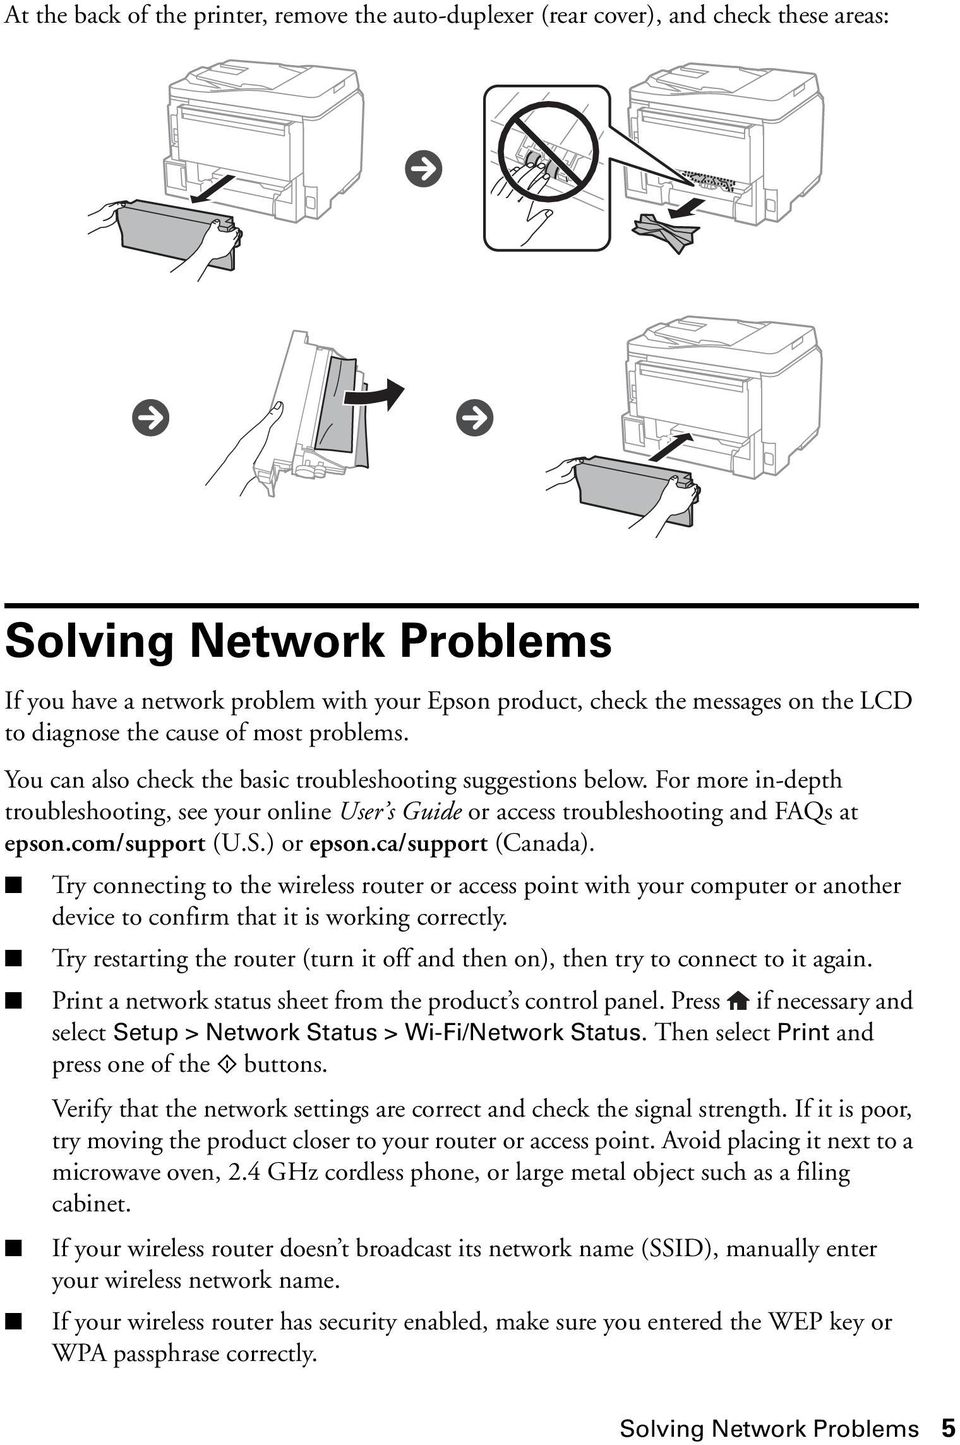 For more in-depth troubleshooting, see your online User s Guide or access troubleshooting and FAQs at epson.com/support (U.S.) or epson.ca/support (Canada).